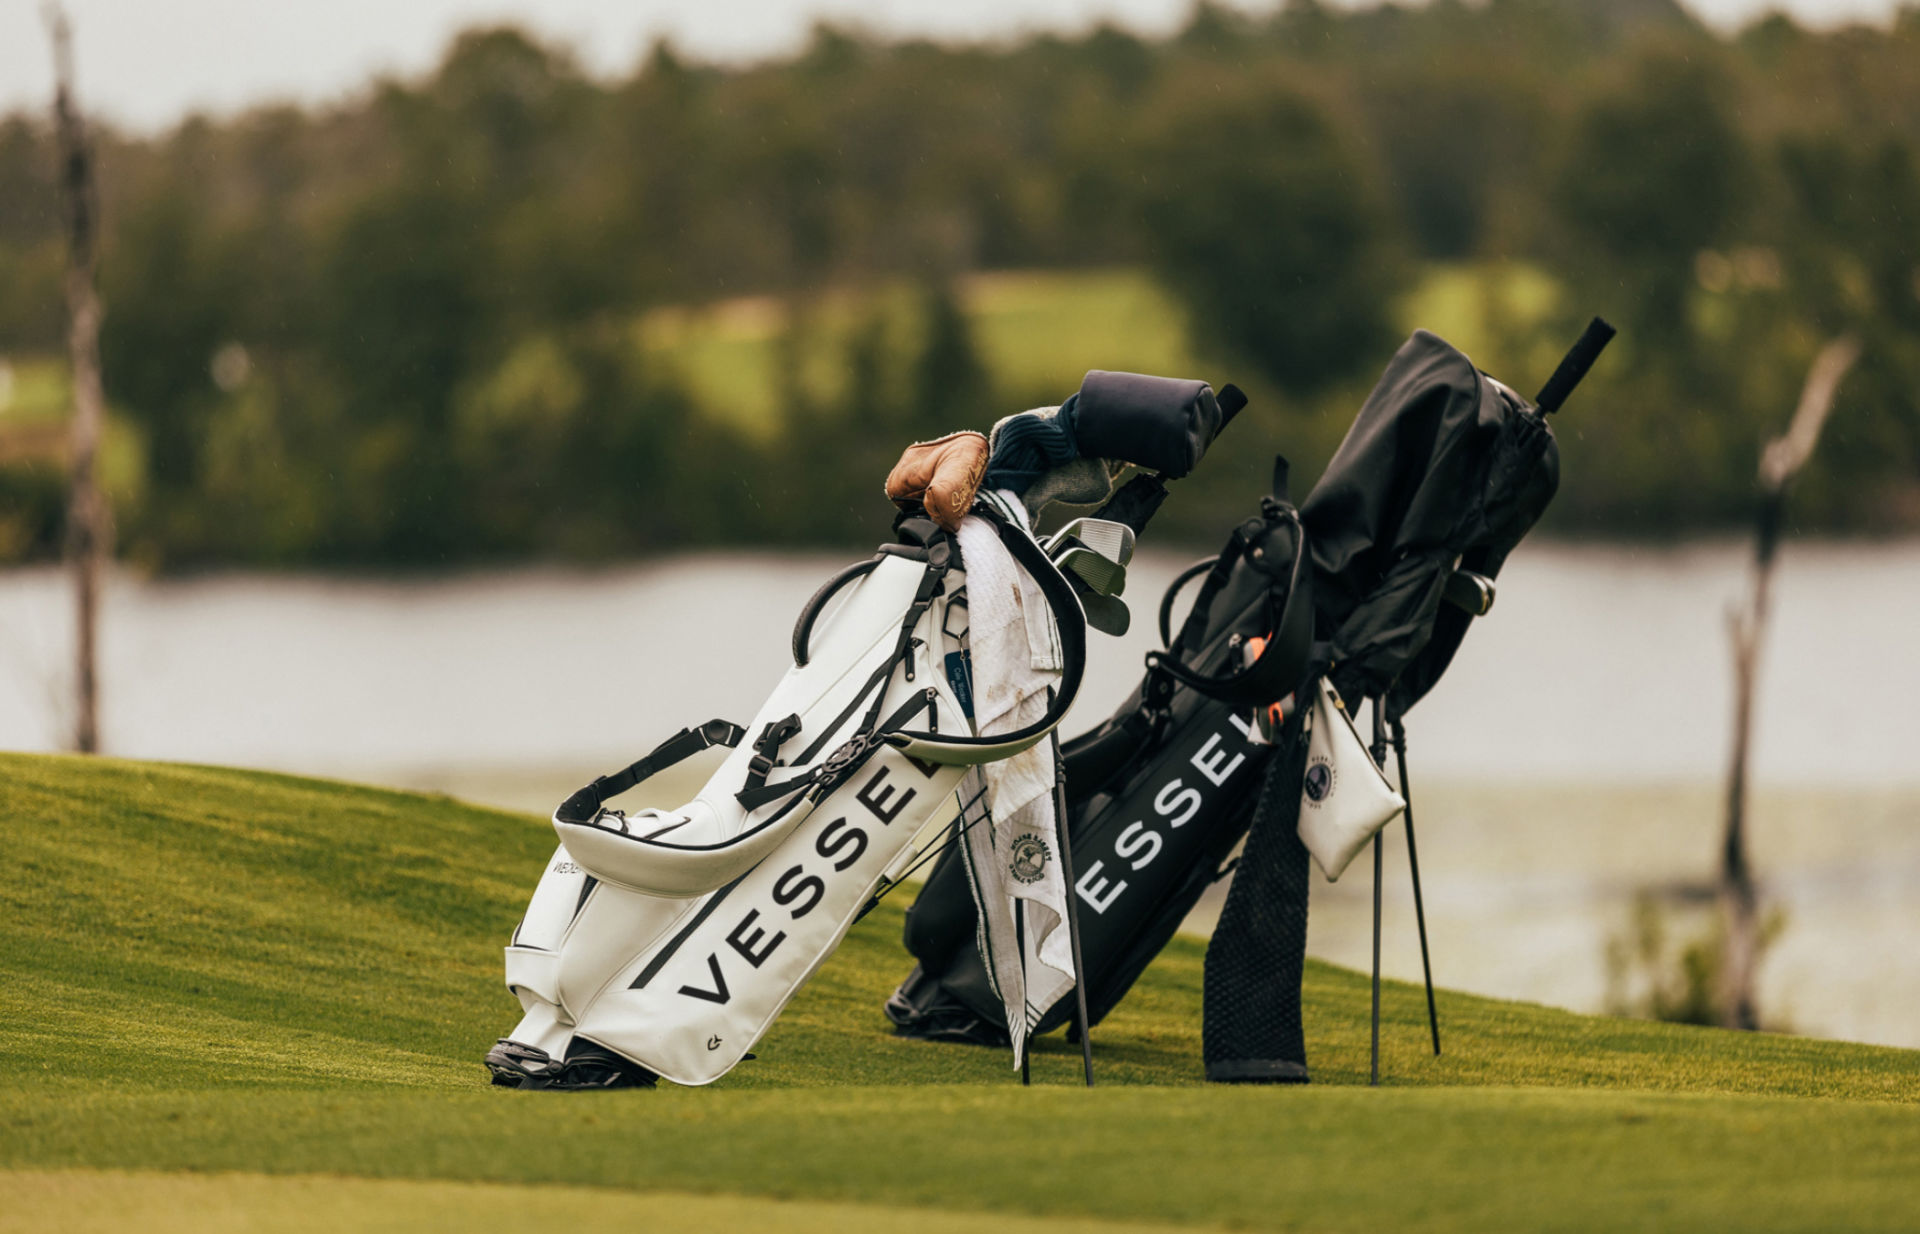 Vessel Golf Bags Lifestyle Photography